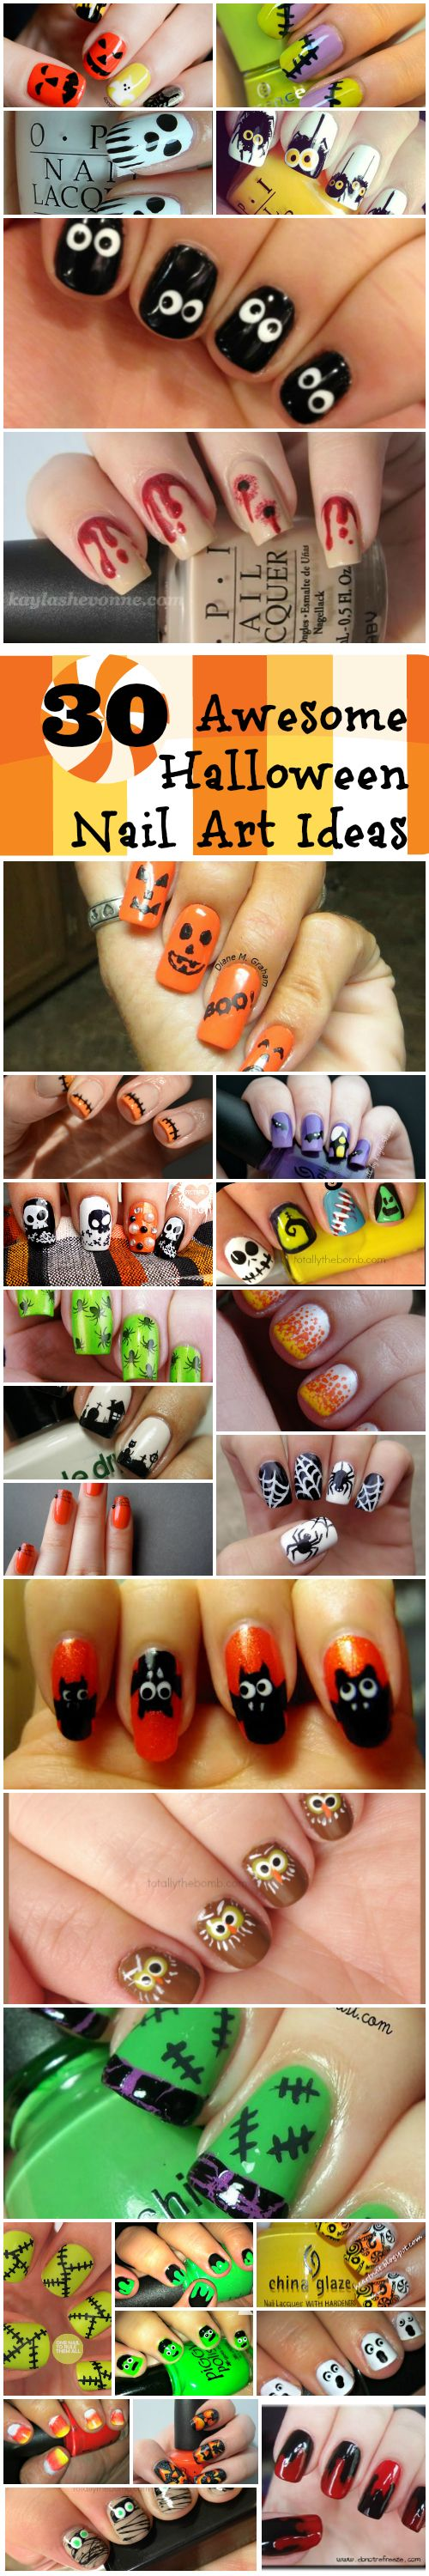 30 Awesome Halloween Nail Art Ideas: